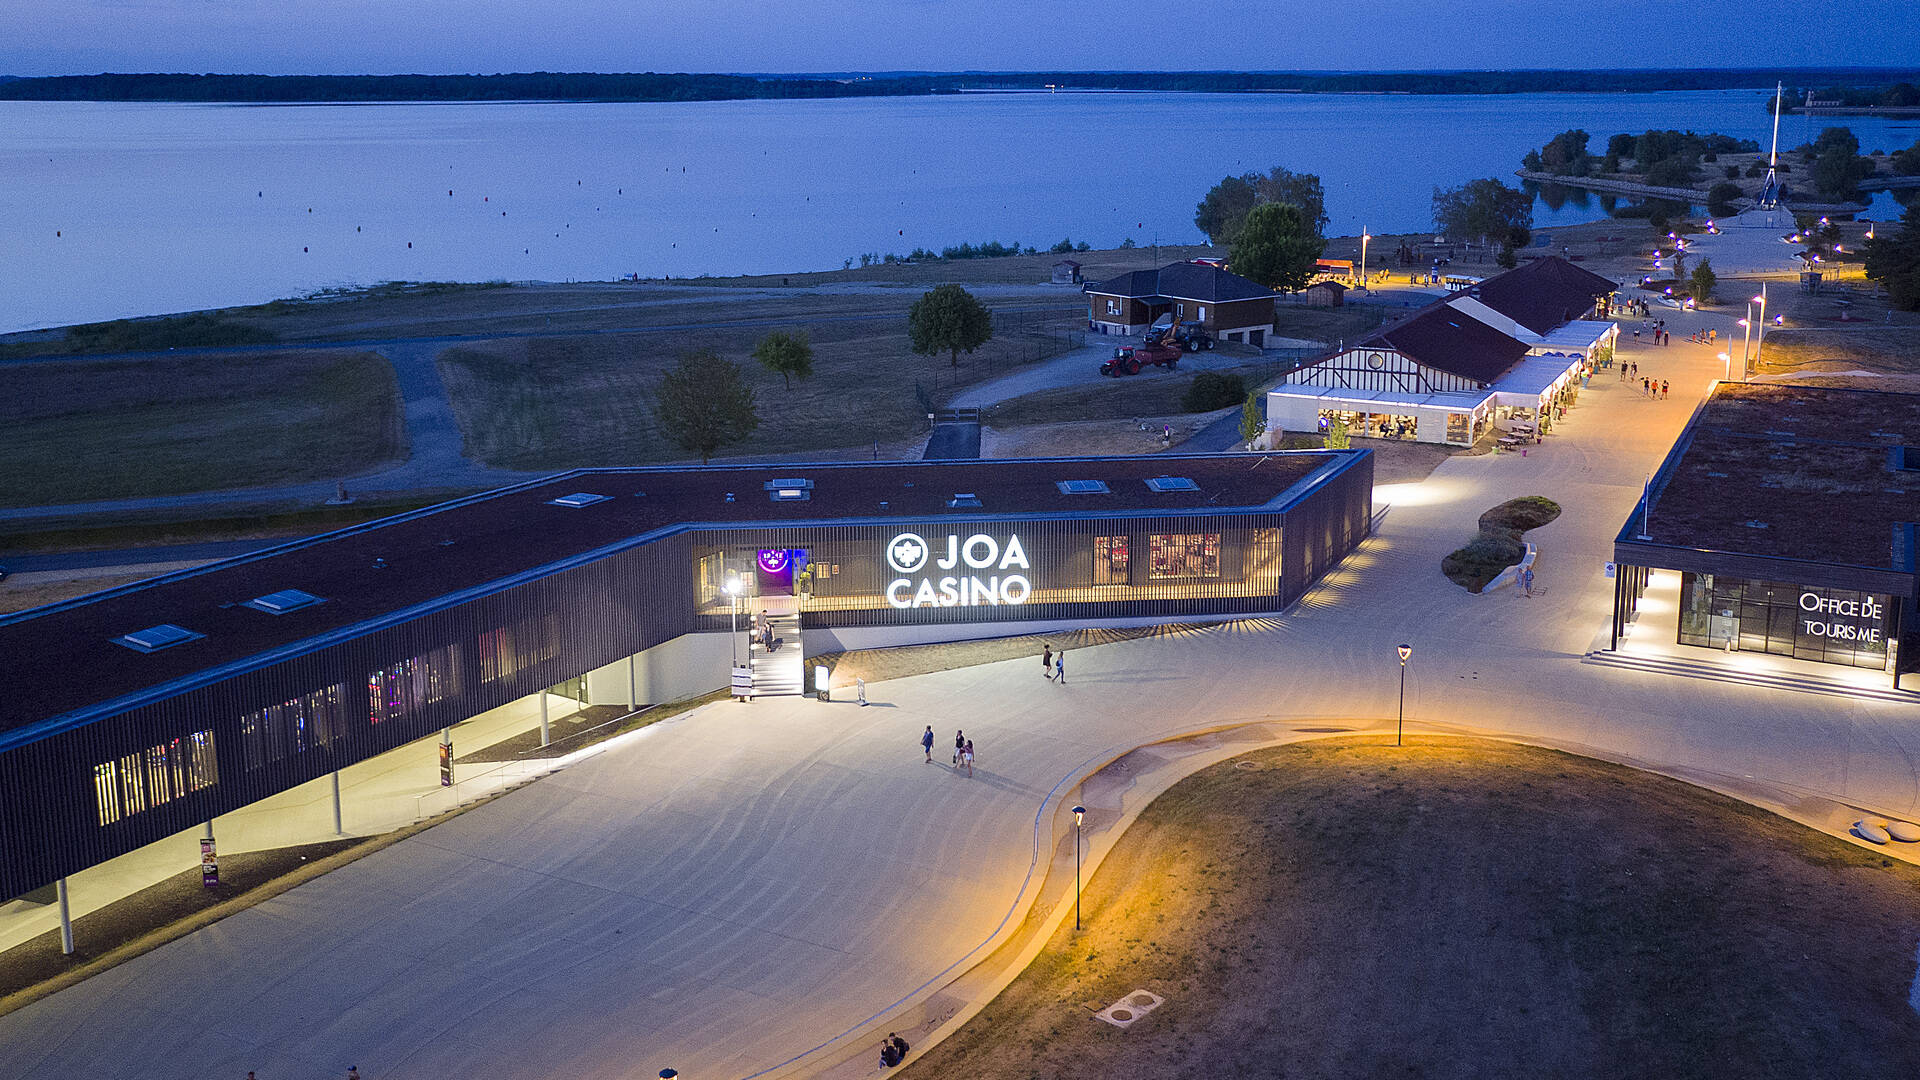 Aerial view of the Casino JOA